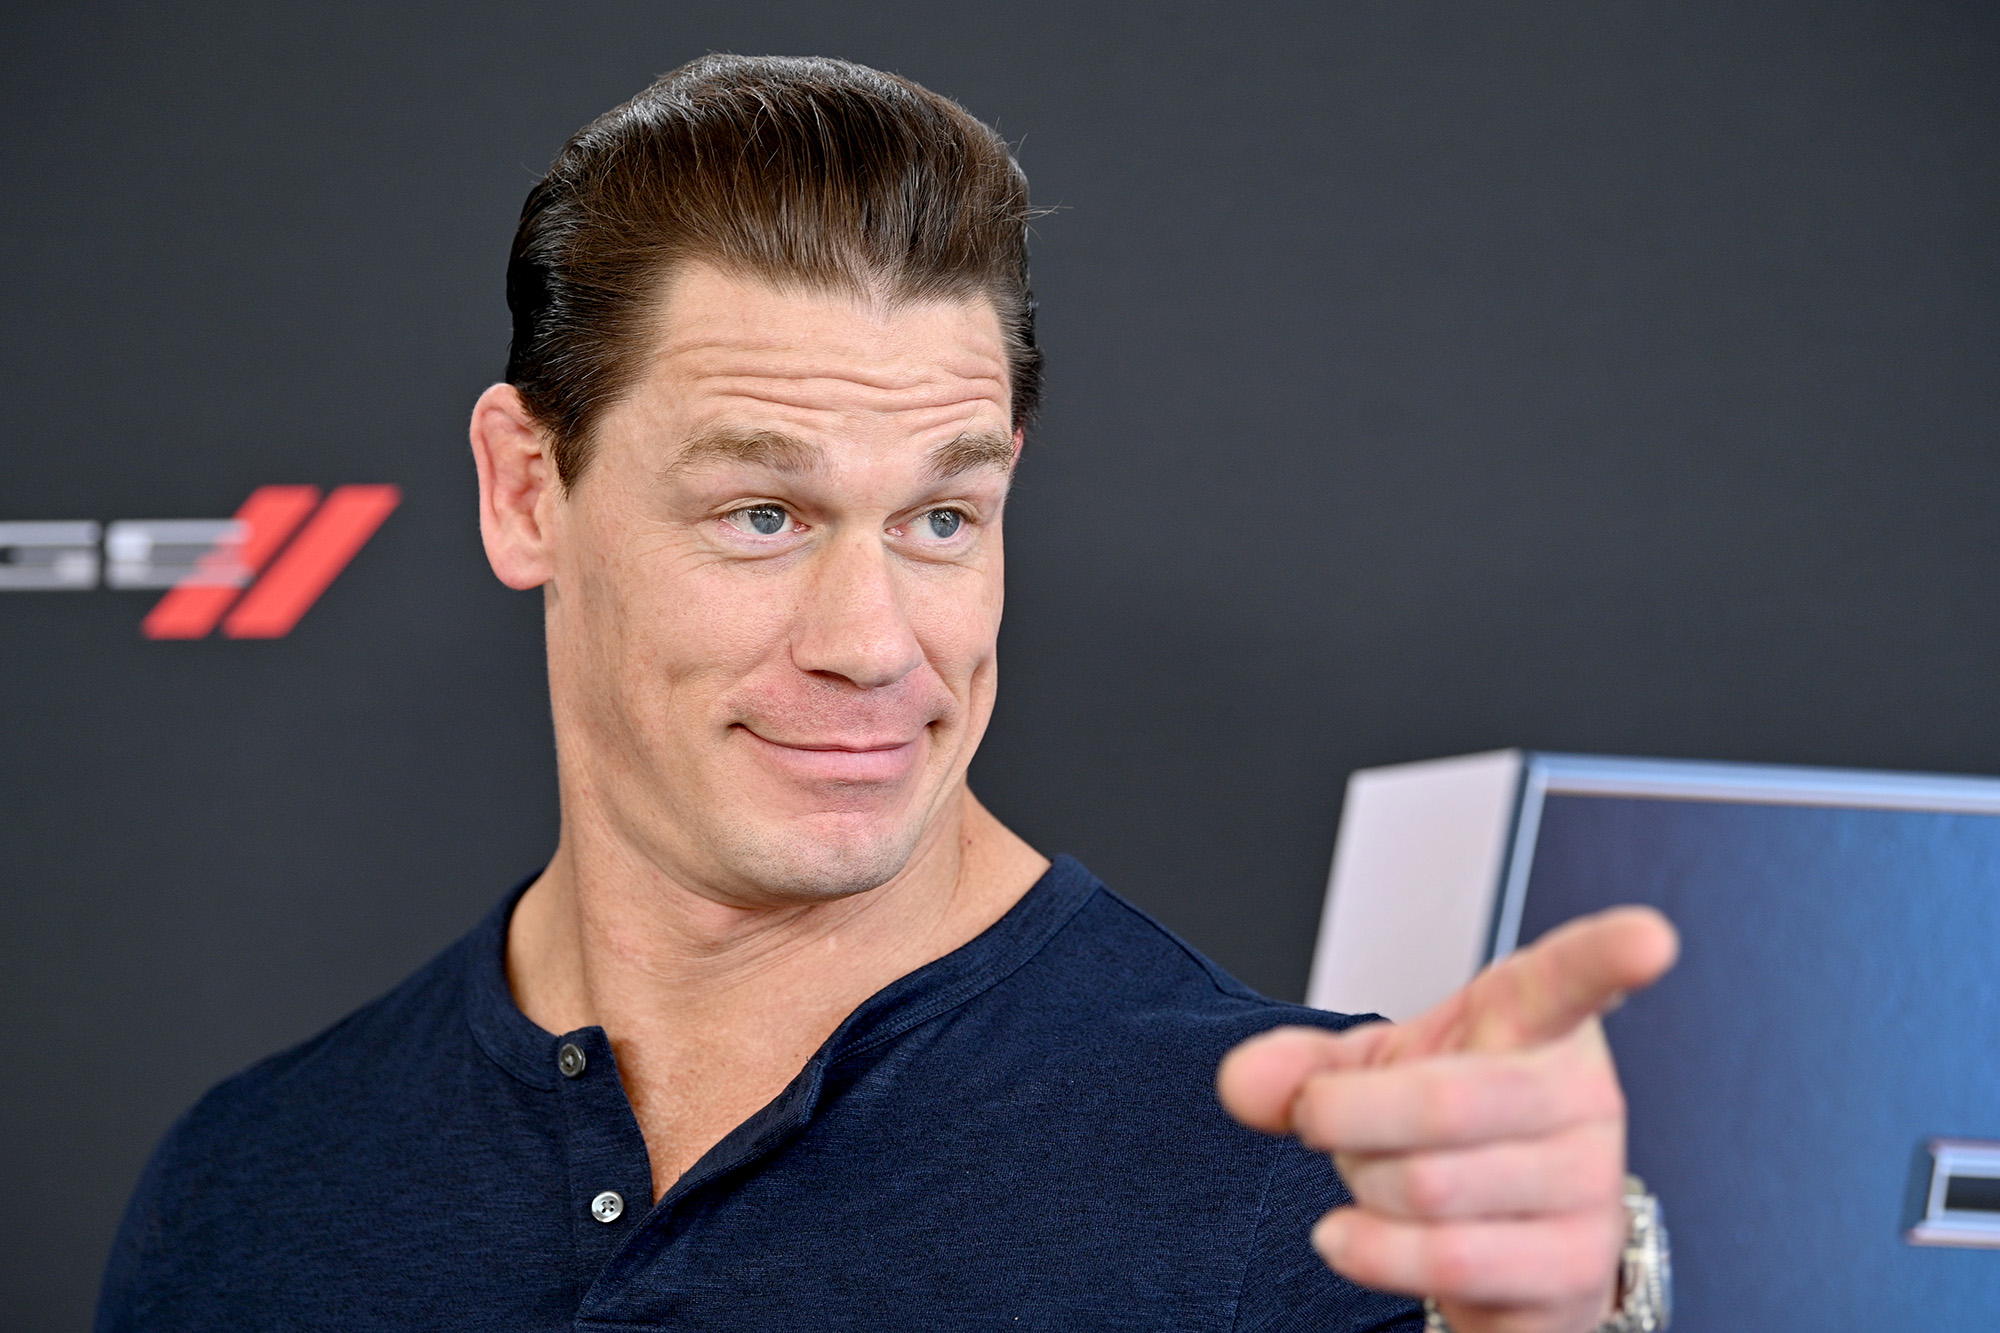 """""""john-cena-times-2-u-k-citizen-changes-his-legal-name-to-the-one-of-the-wwe-star-after-a-drunk-dare"""""""